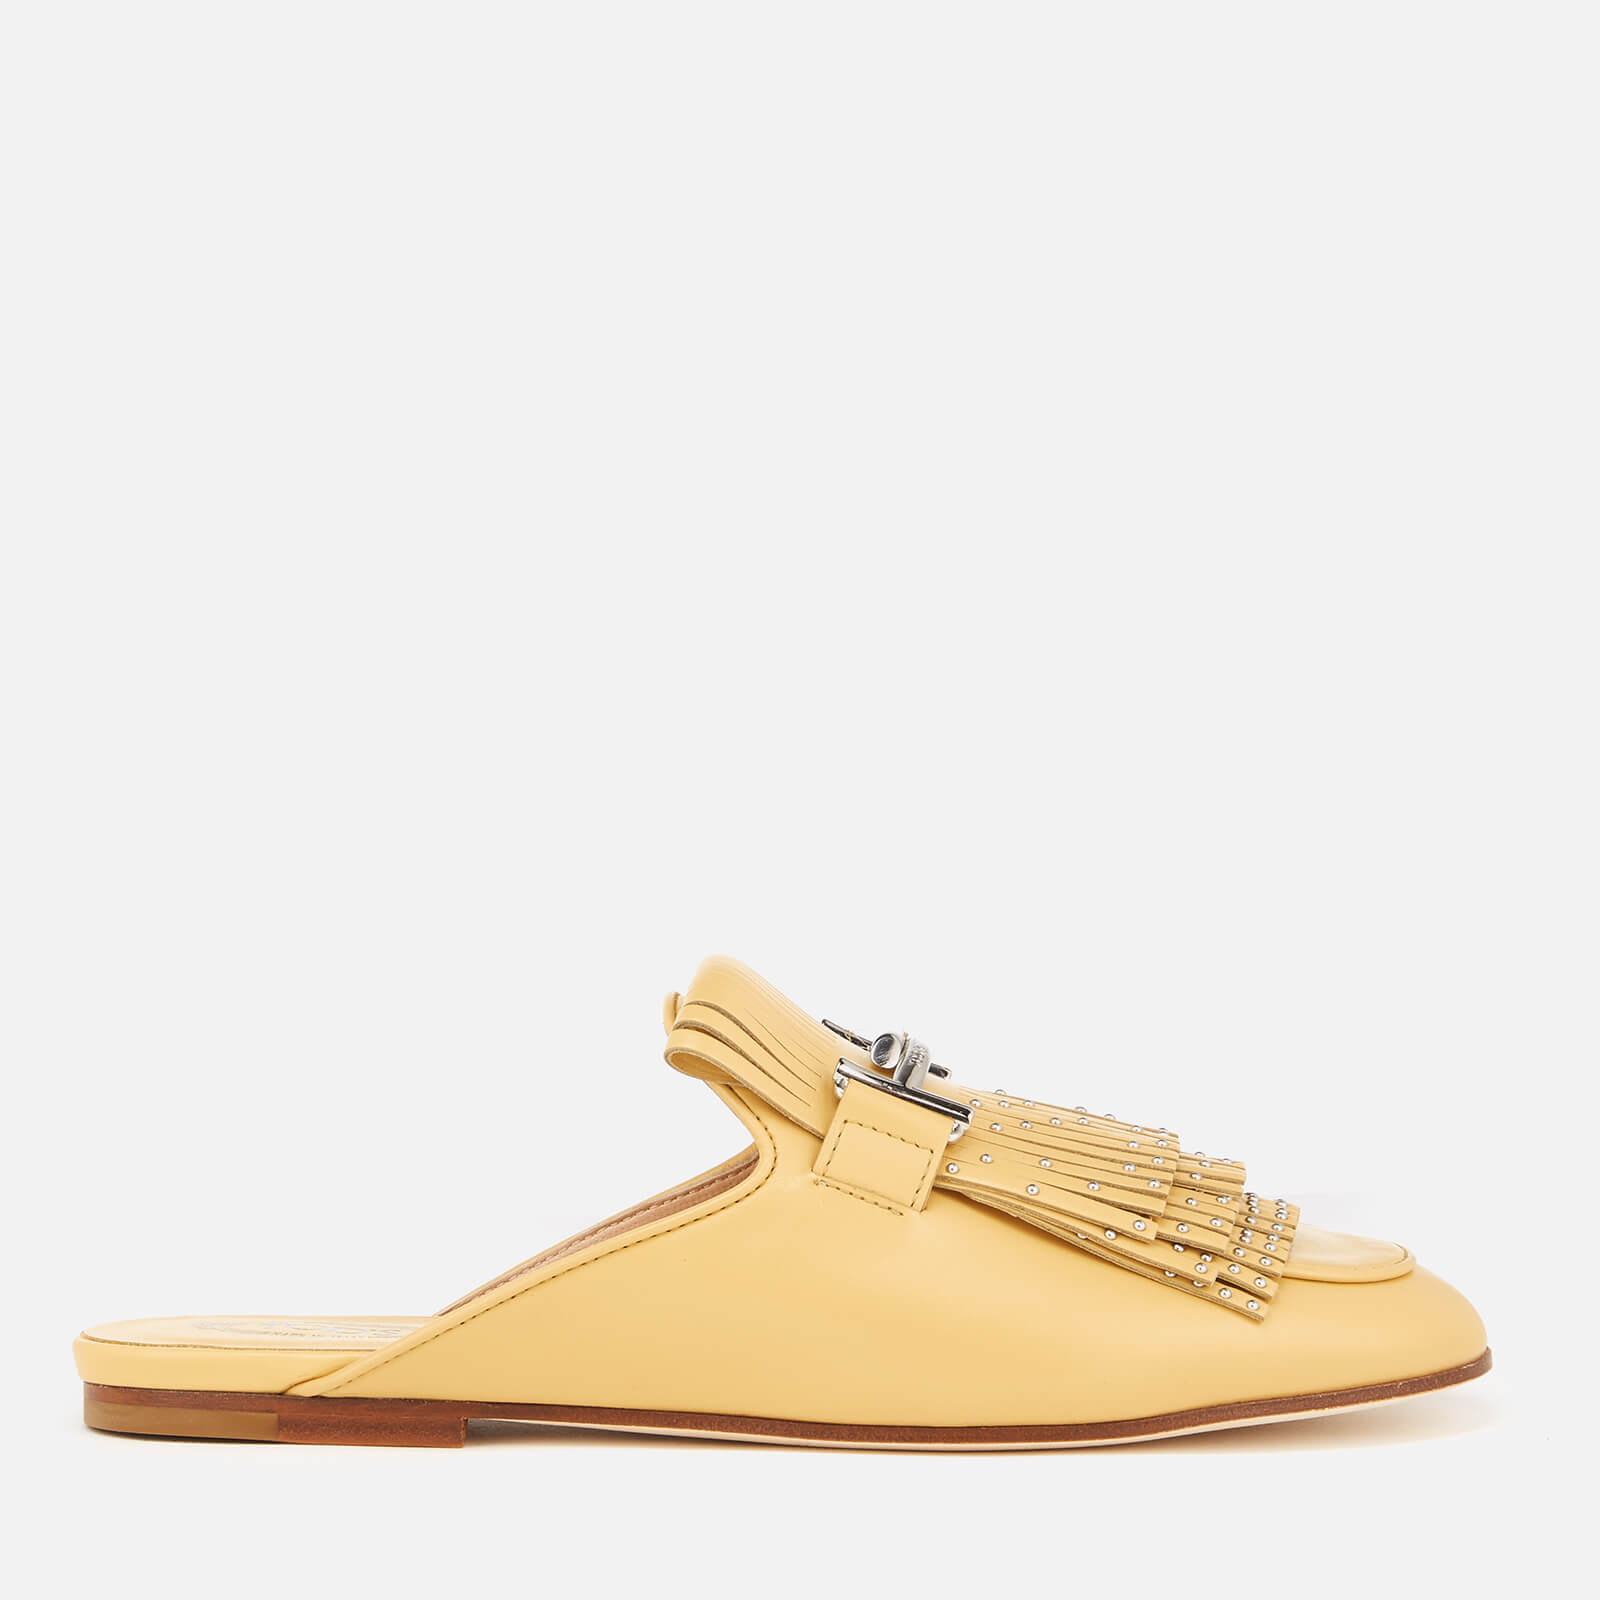 0aa92216f61 Tod s Women s Leather Double T Deinge Slip On Loafers - Yellow - Free UK  Delivery over £50